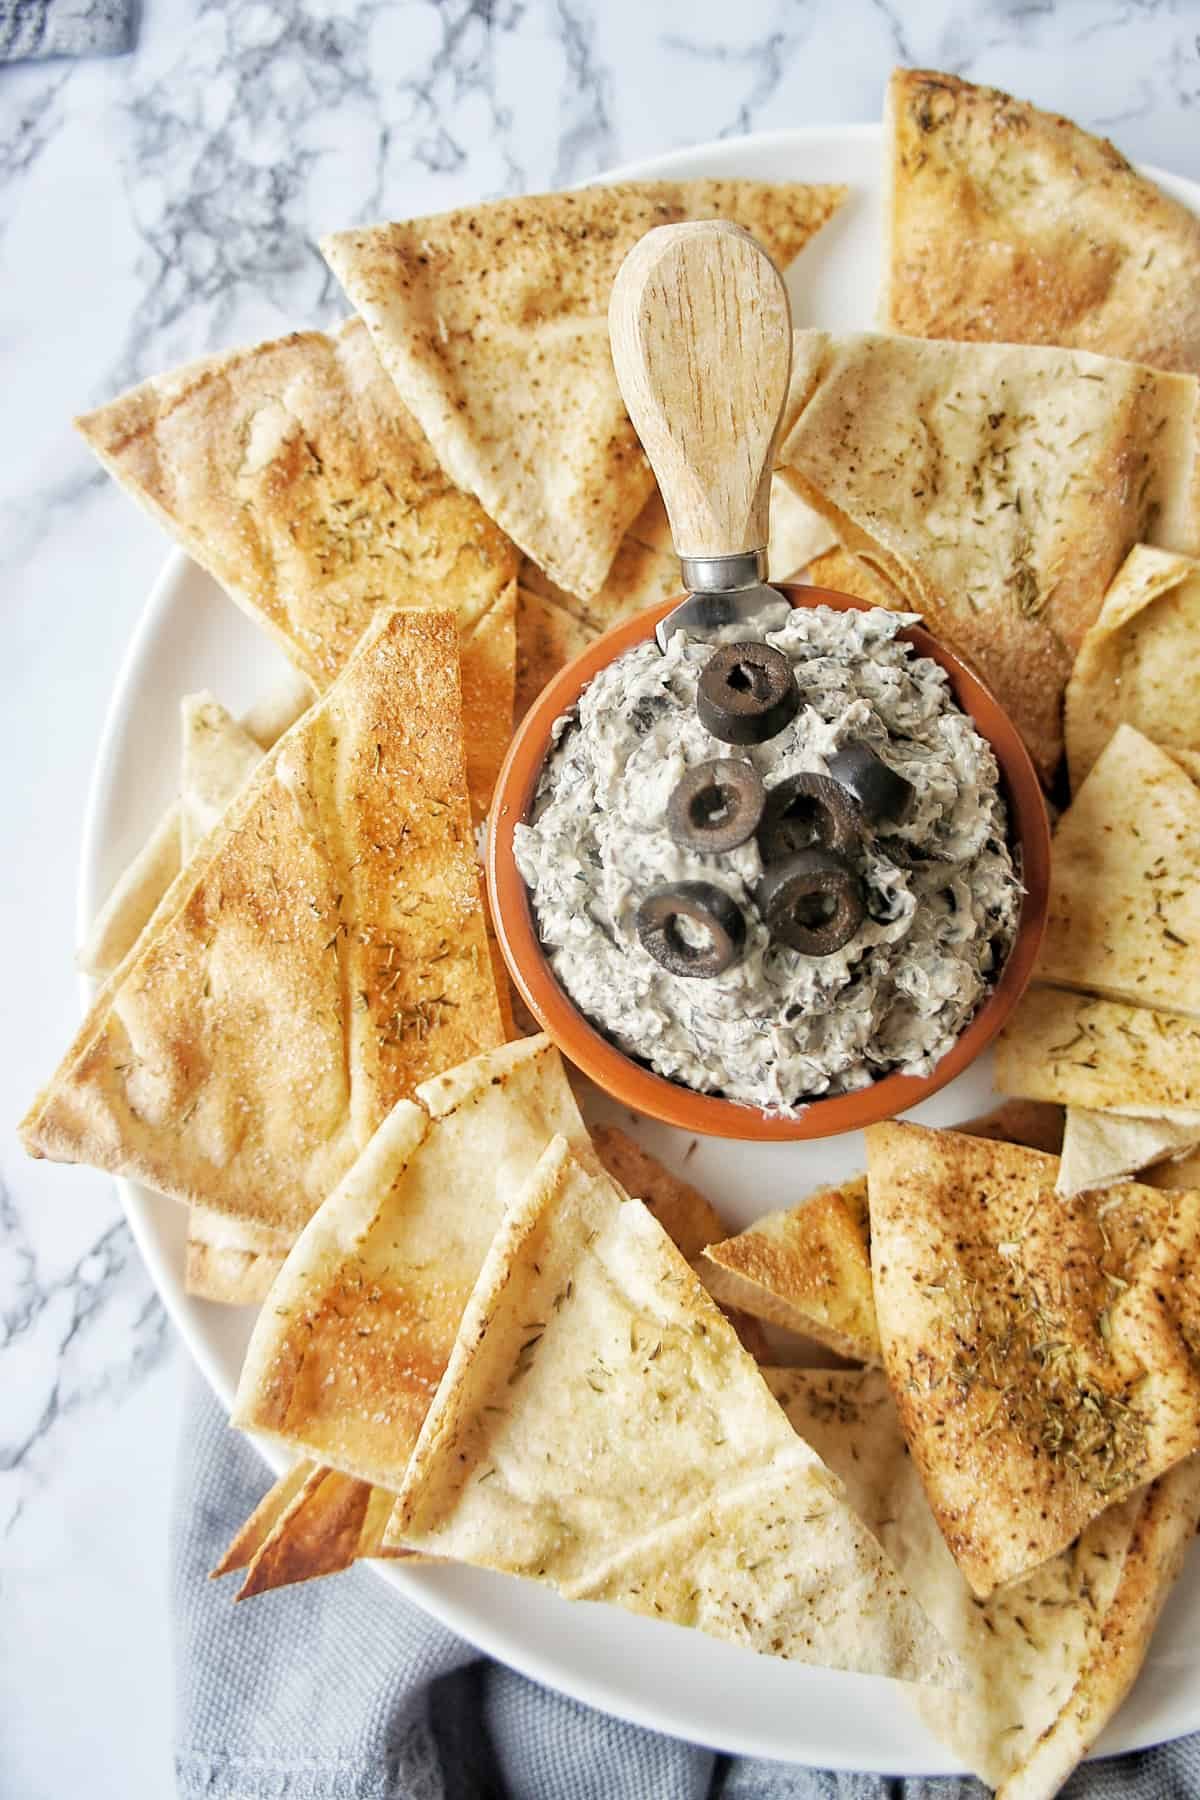 Black Olive Dip on plate with wholewheat pita chips